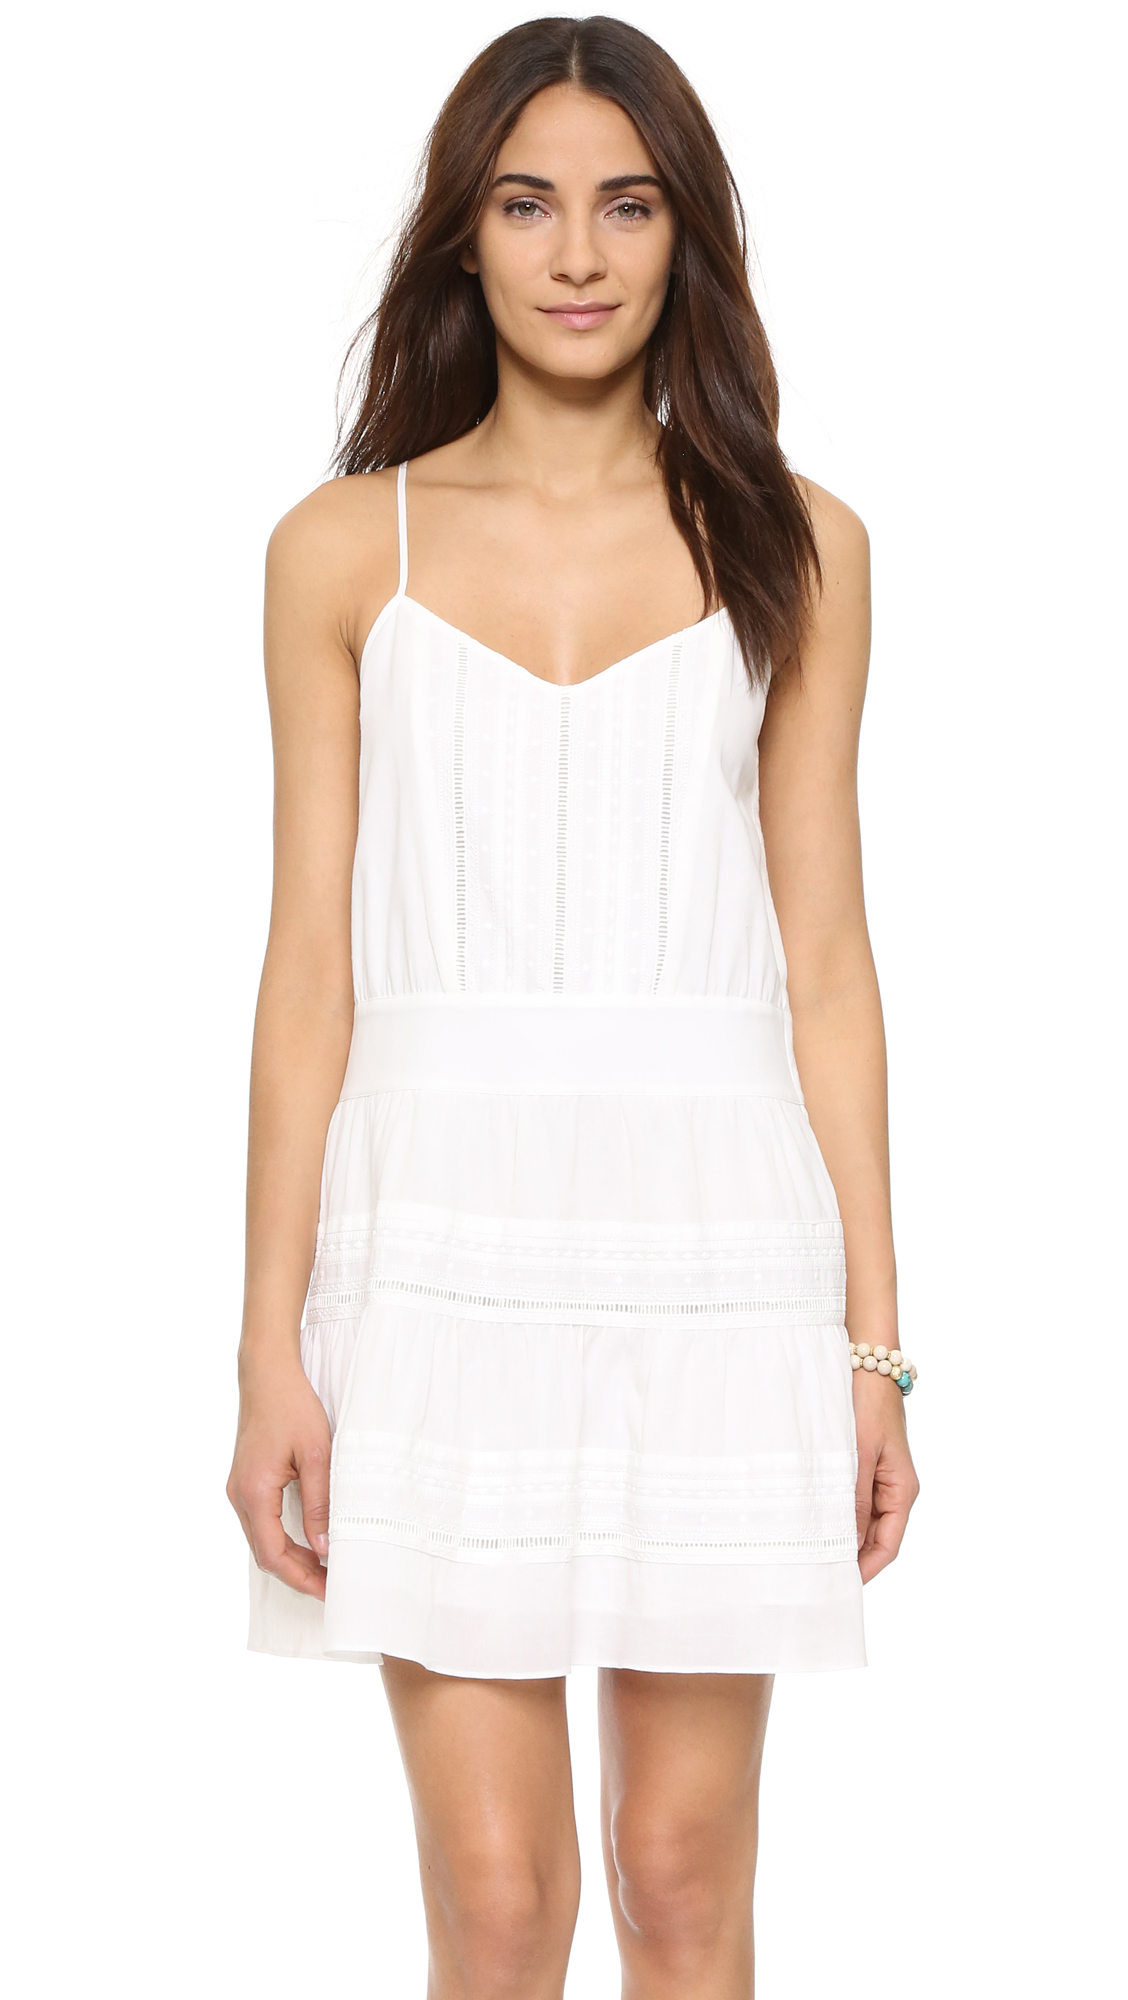 Frame Le Lace Tank Dress Shopbop Save Up To 25 Use Code